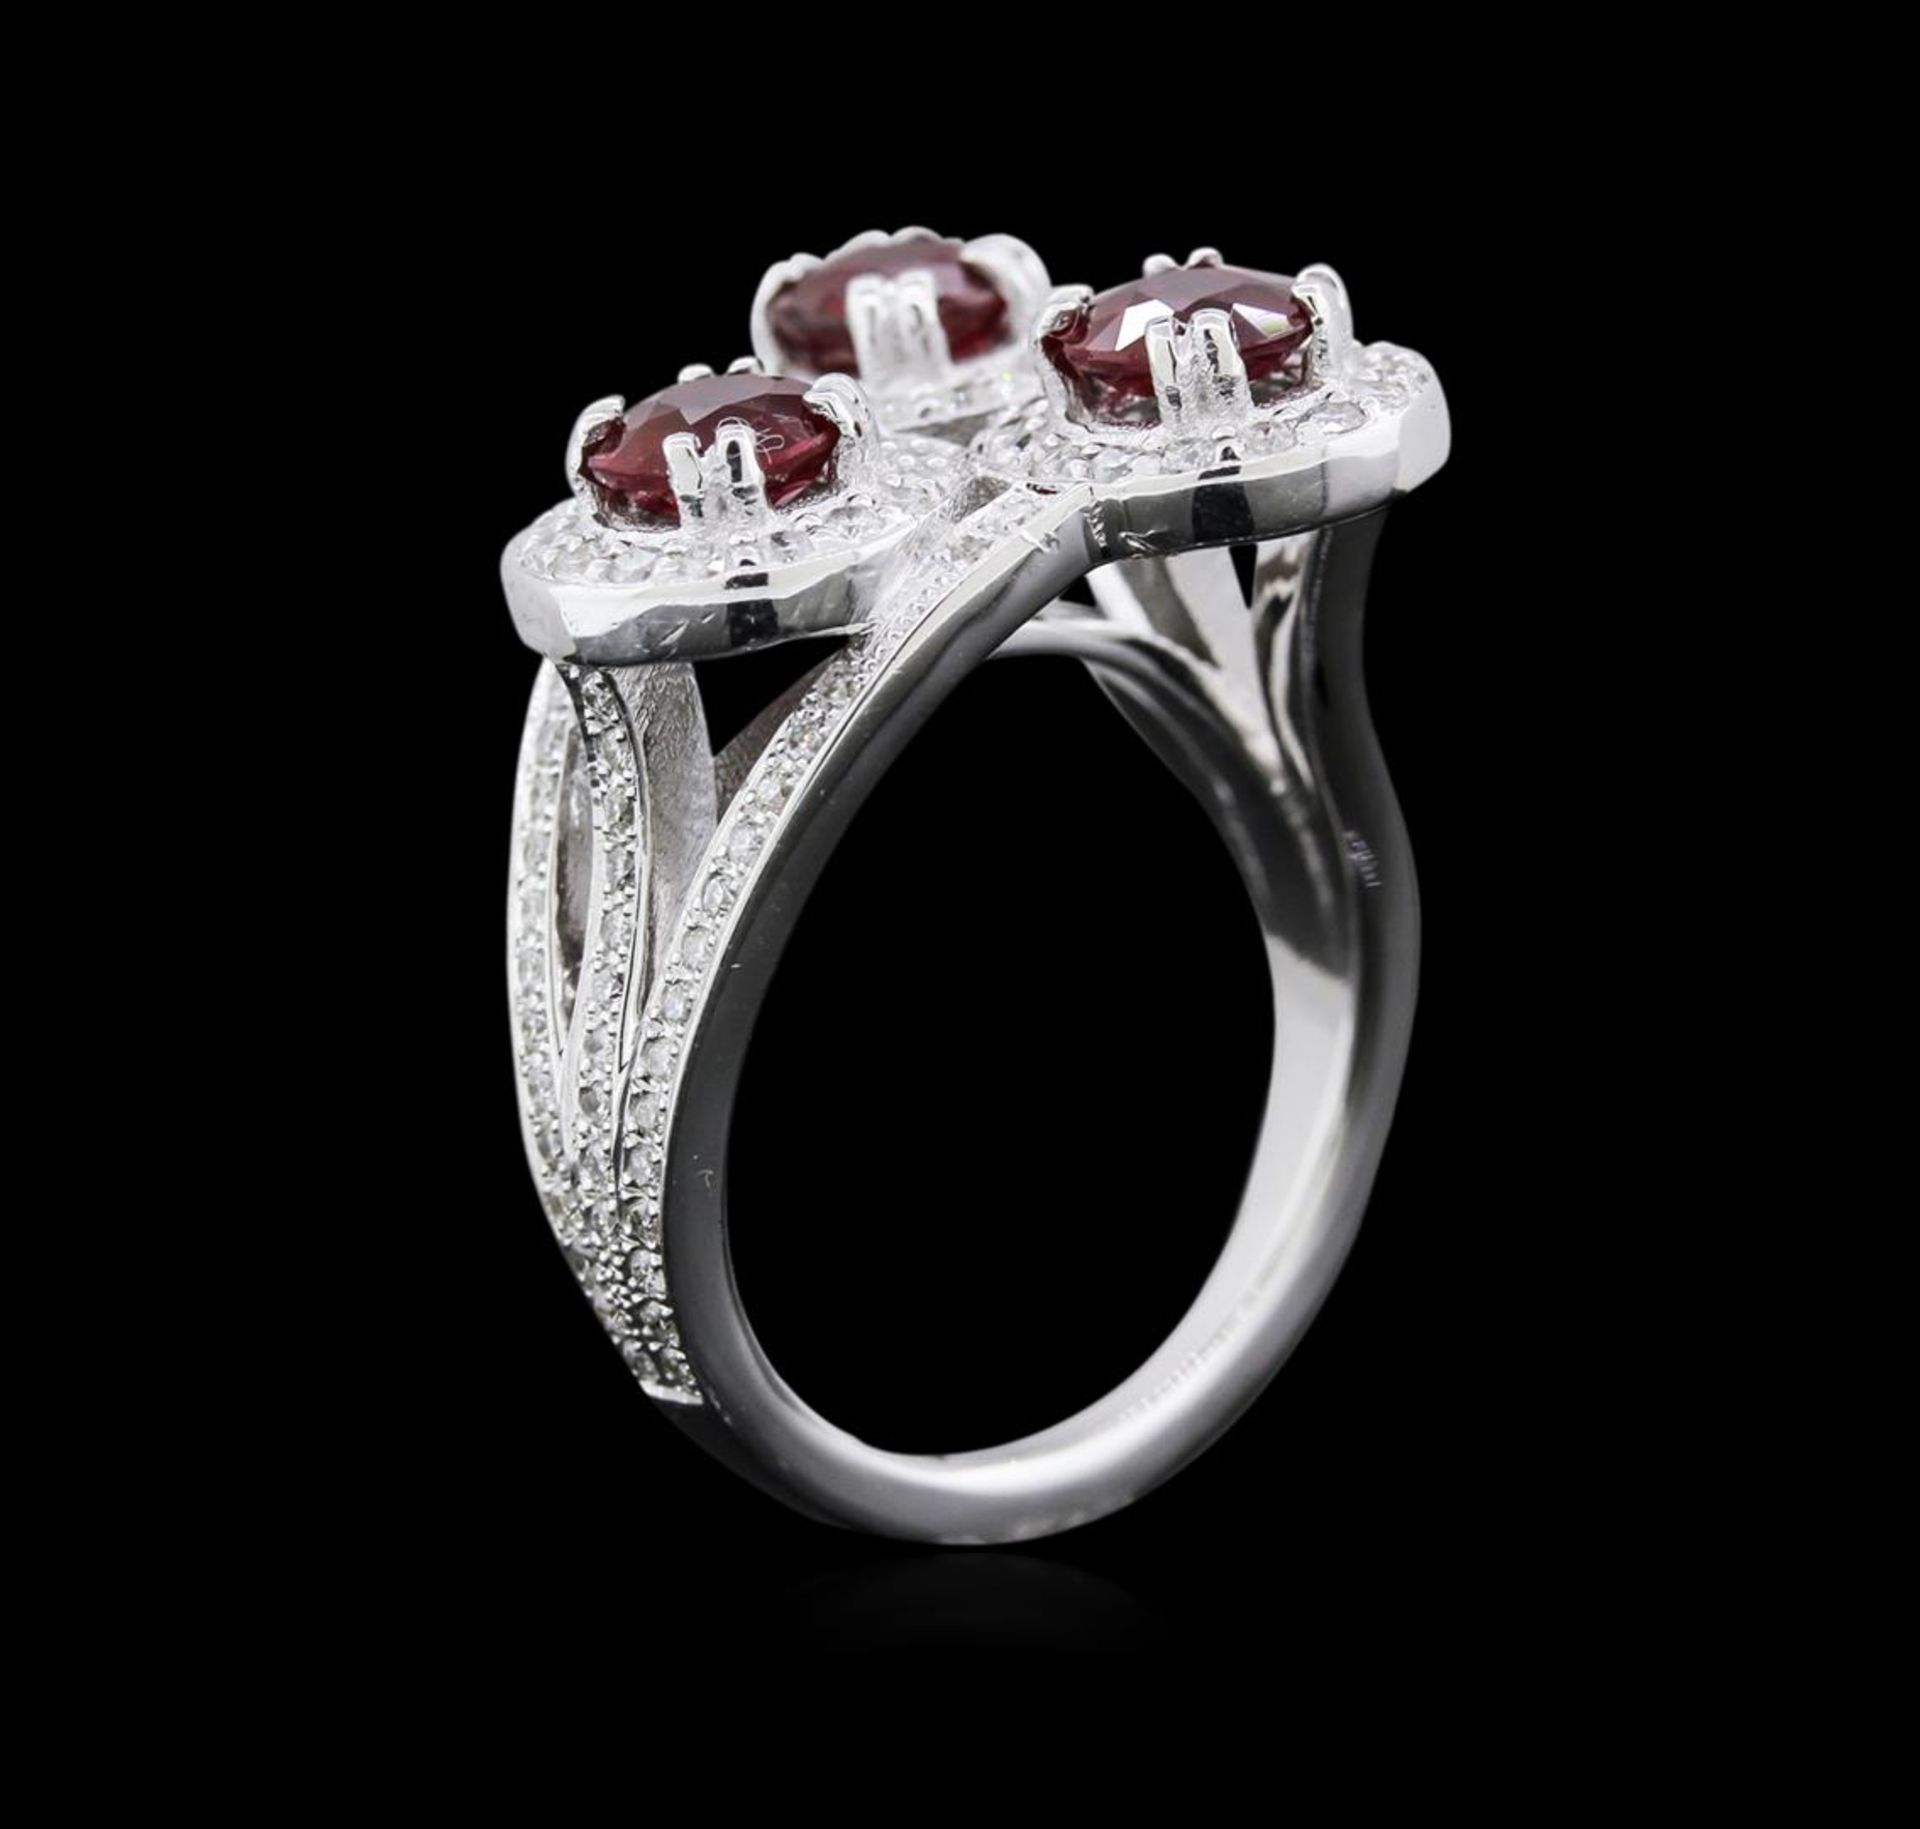 2.64ctw Ruby and Diamond Ring - 14KT White Gold - Image 3 of 4